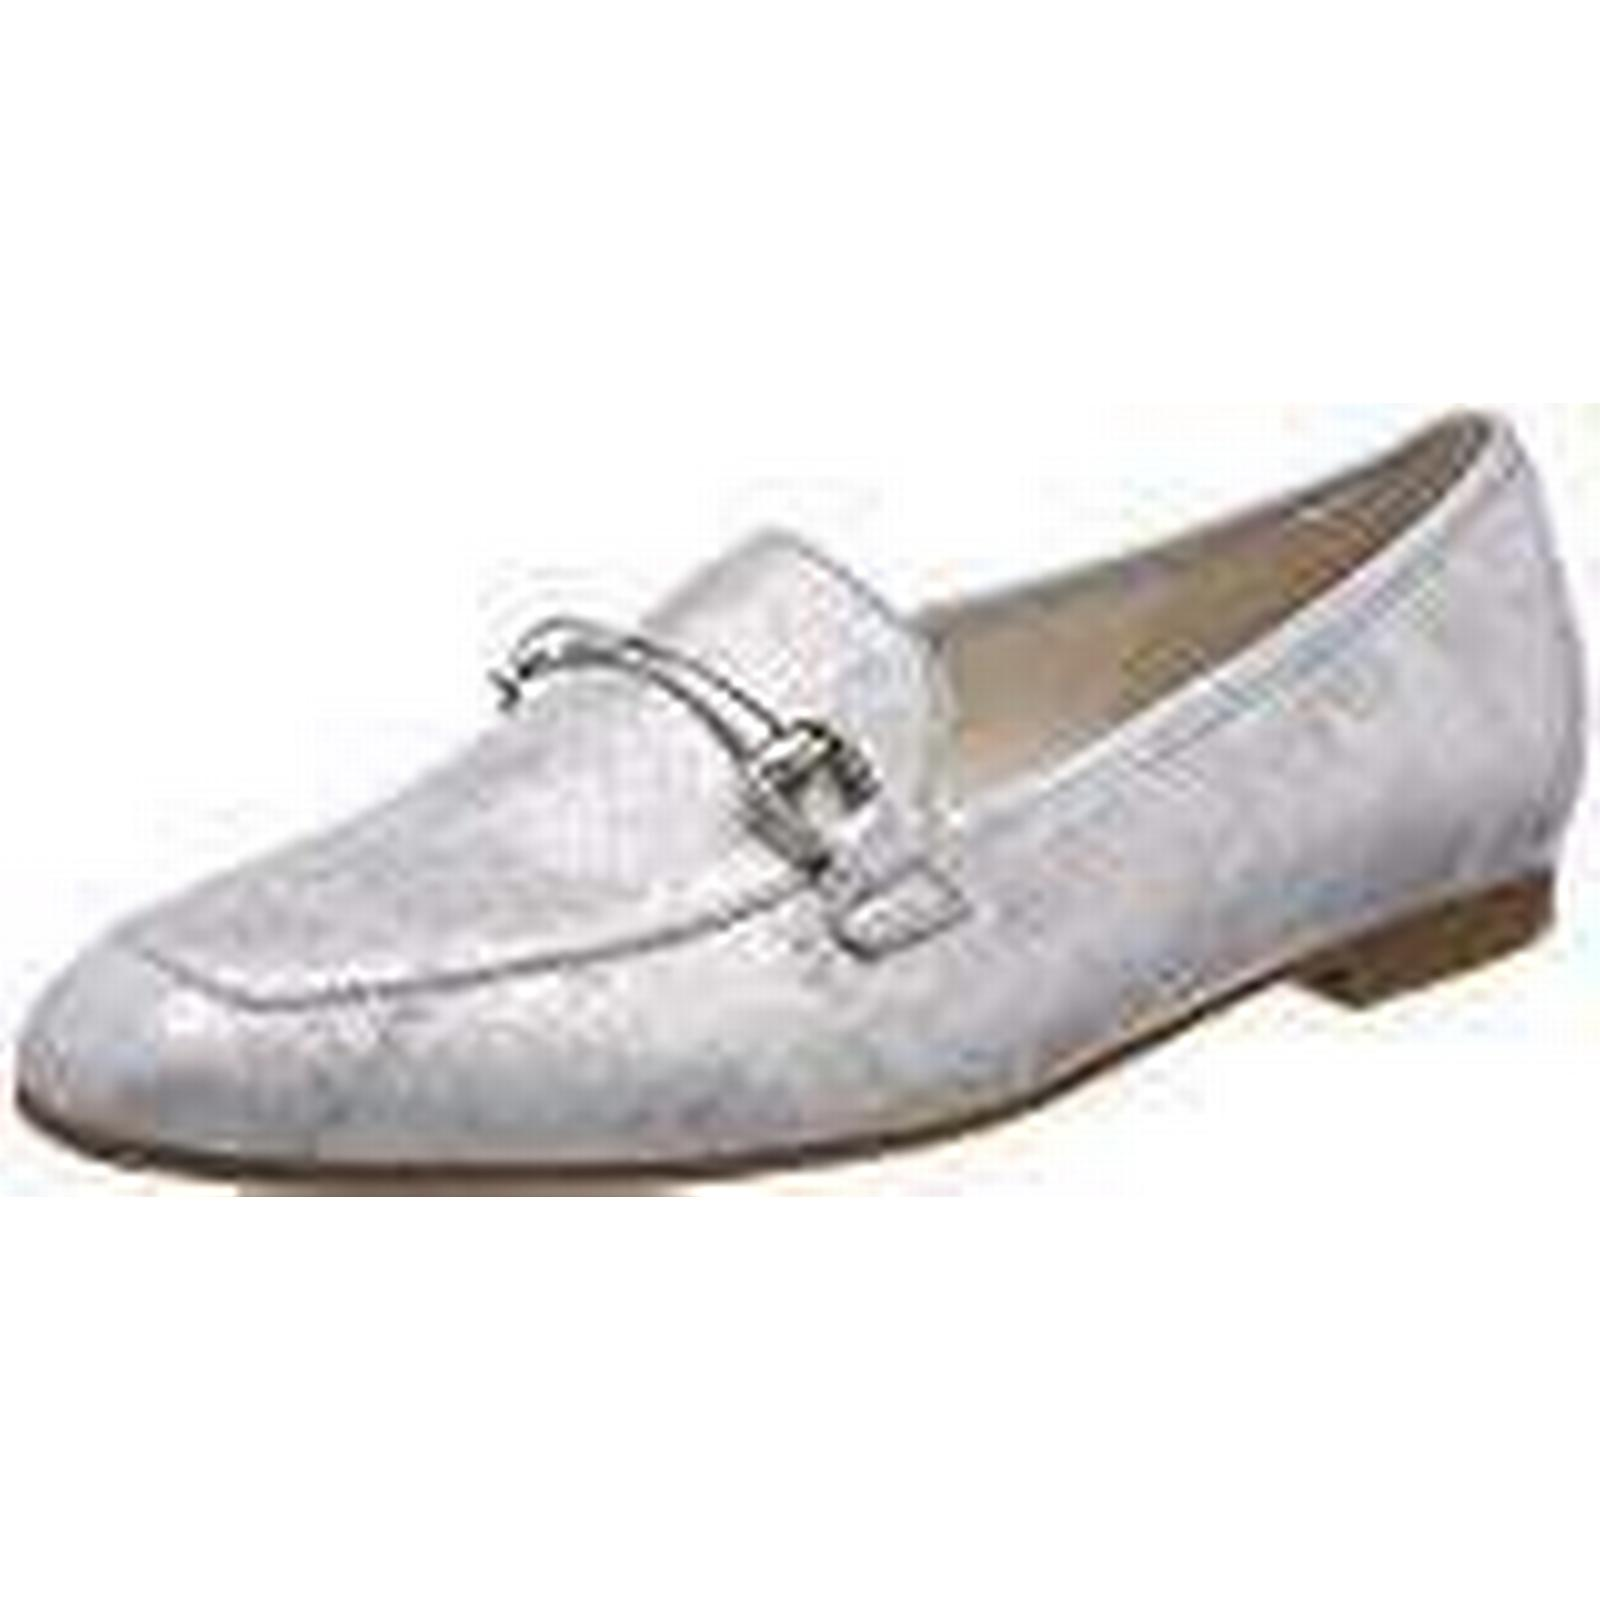 Gabor Shoes (Ice), Women's Casual Loafers, White (Ice), Shoes 7 UK (40.5 EU) ea0d56